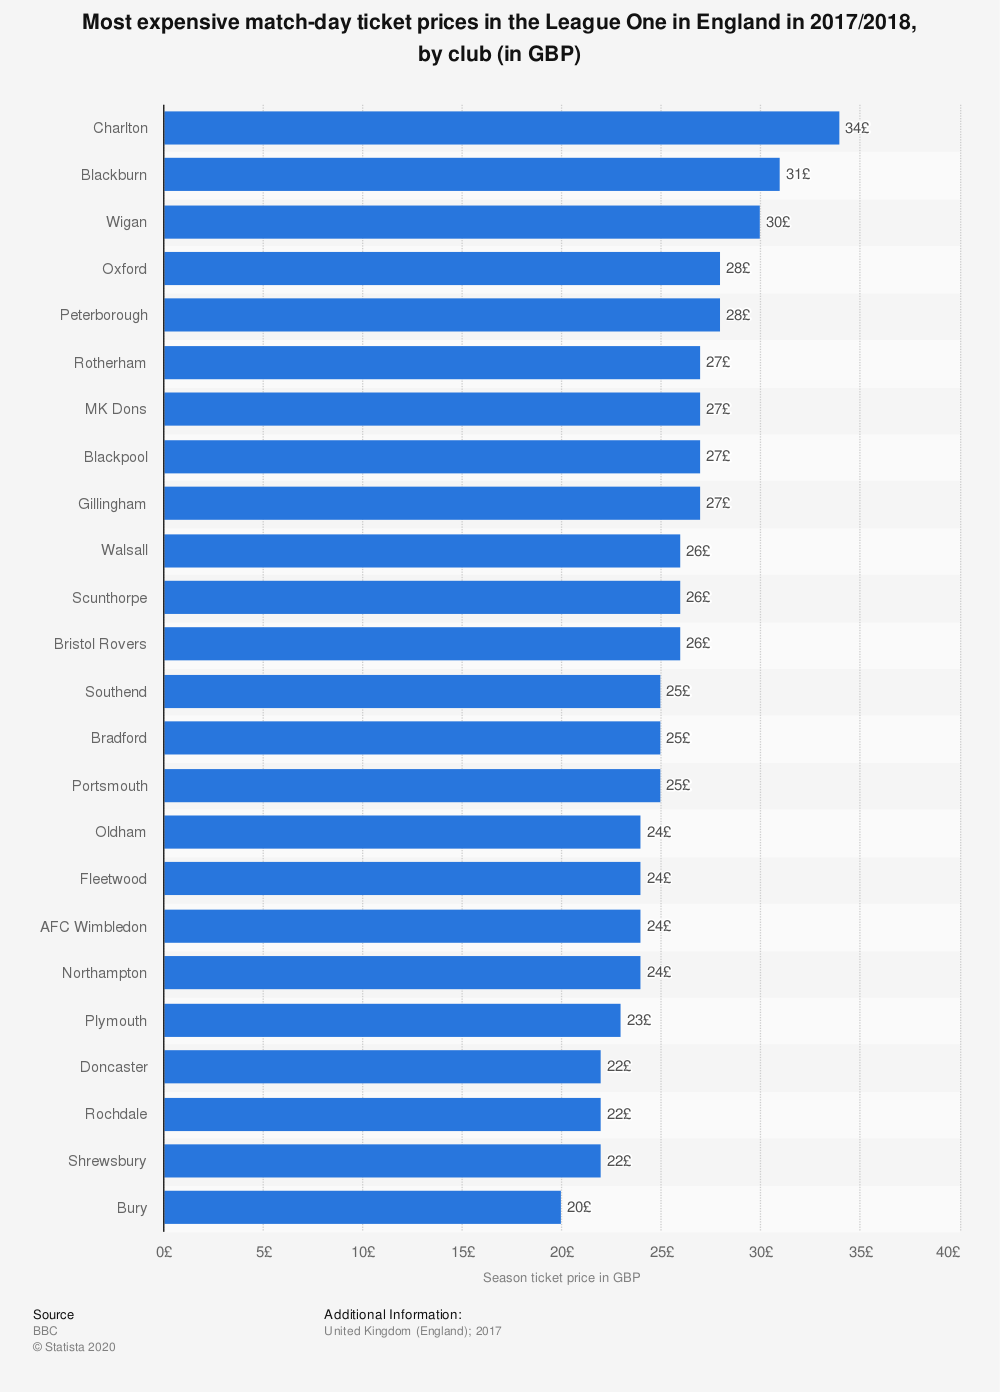 Statistic: Most expensive match-day ticket prices in the League One in England in 2017/2018, by club (in GBP) | Statista